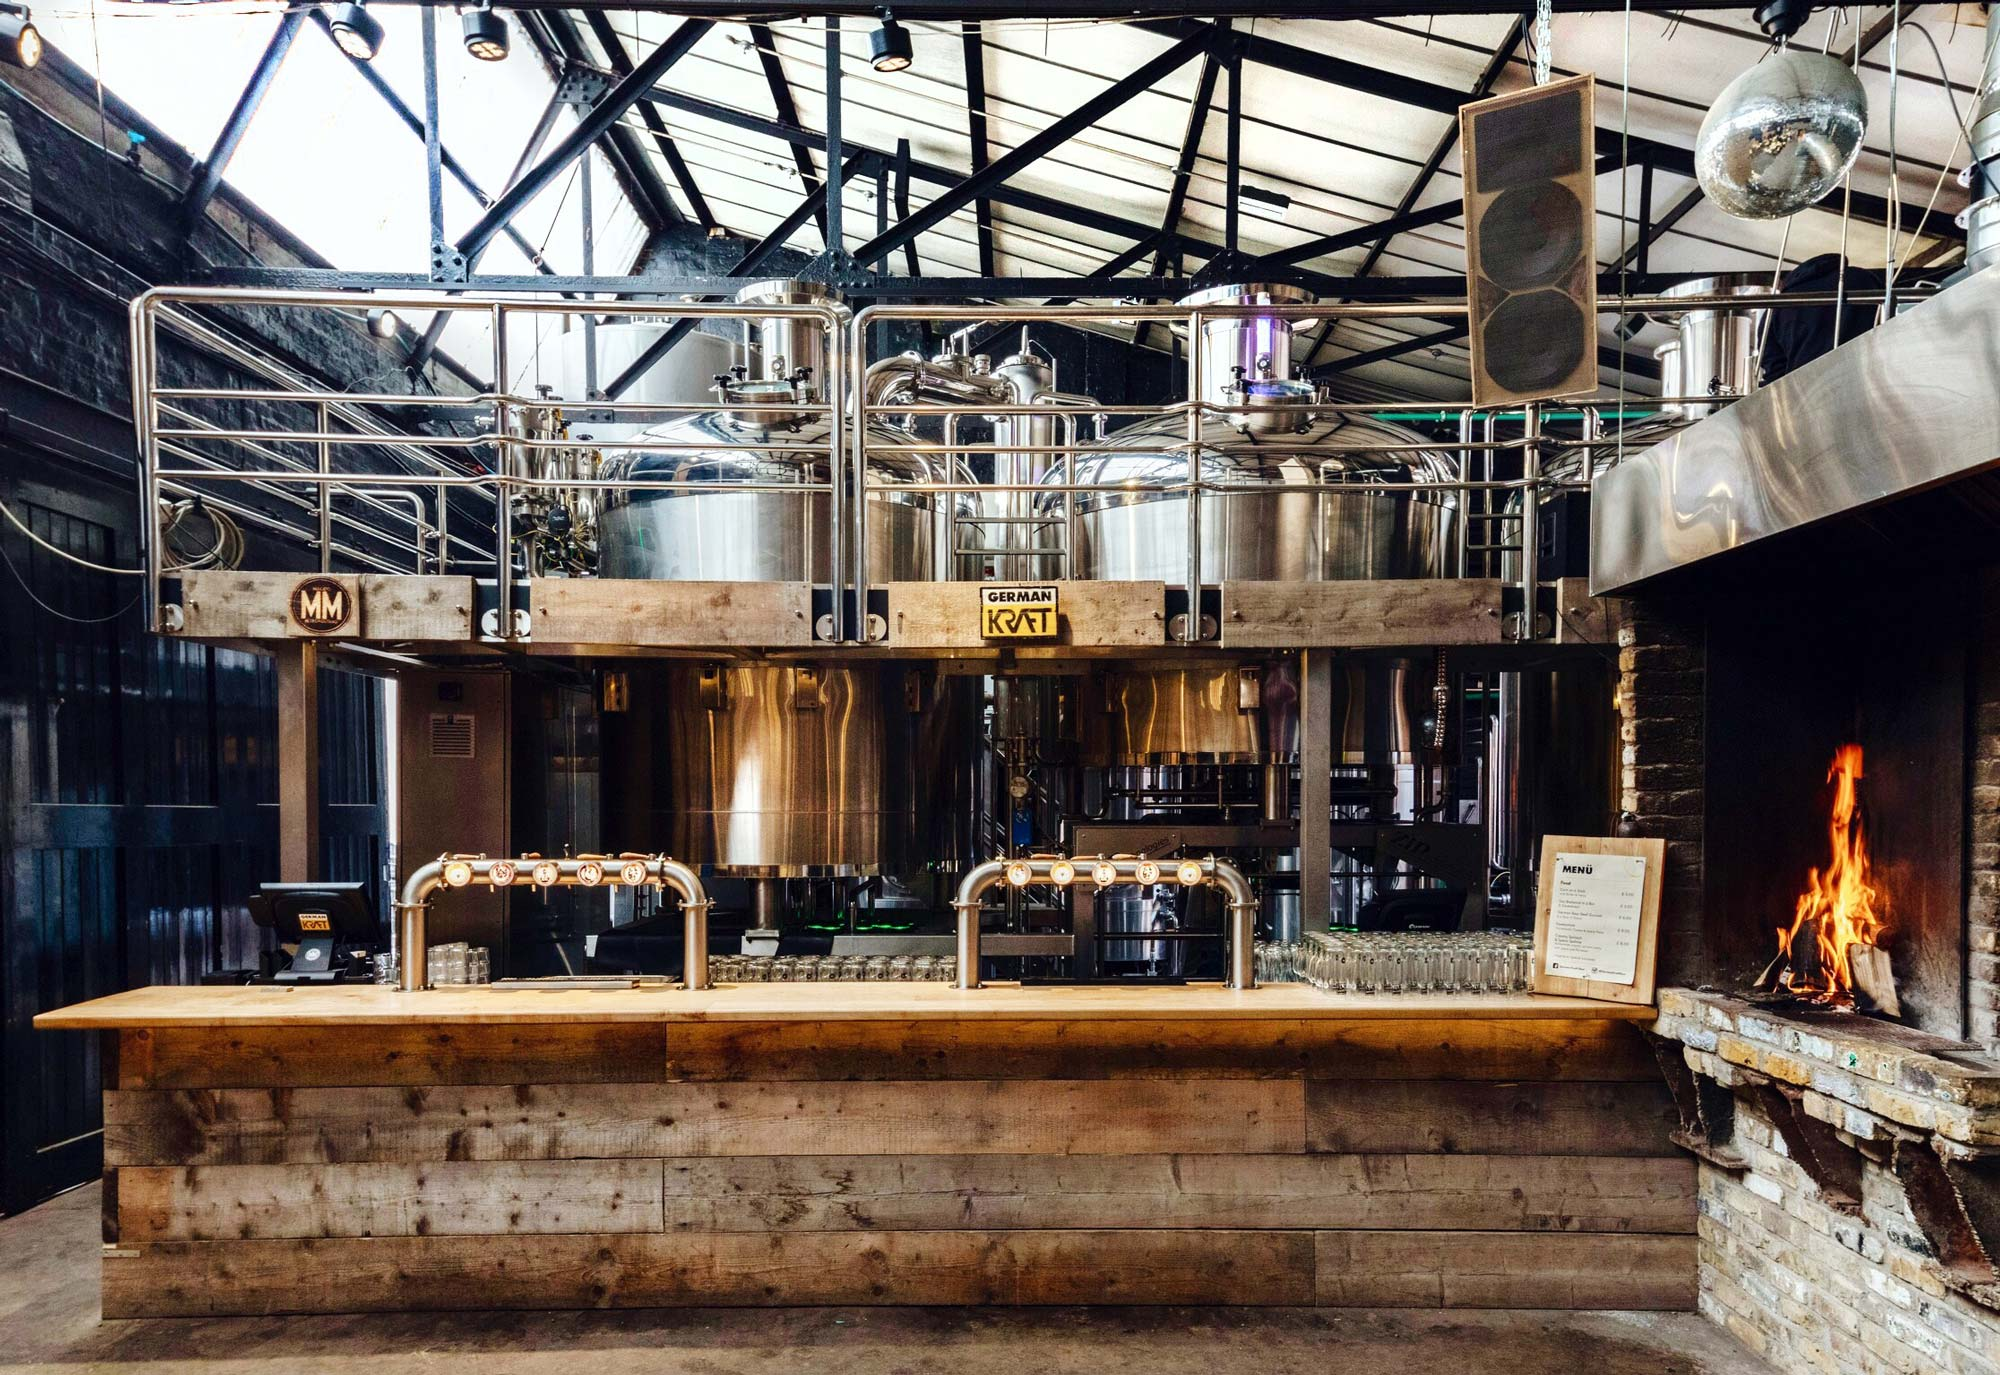 So, what actually is a taproom?